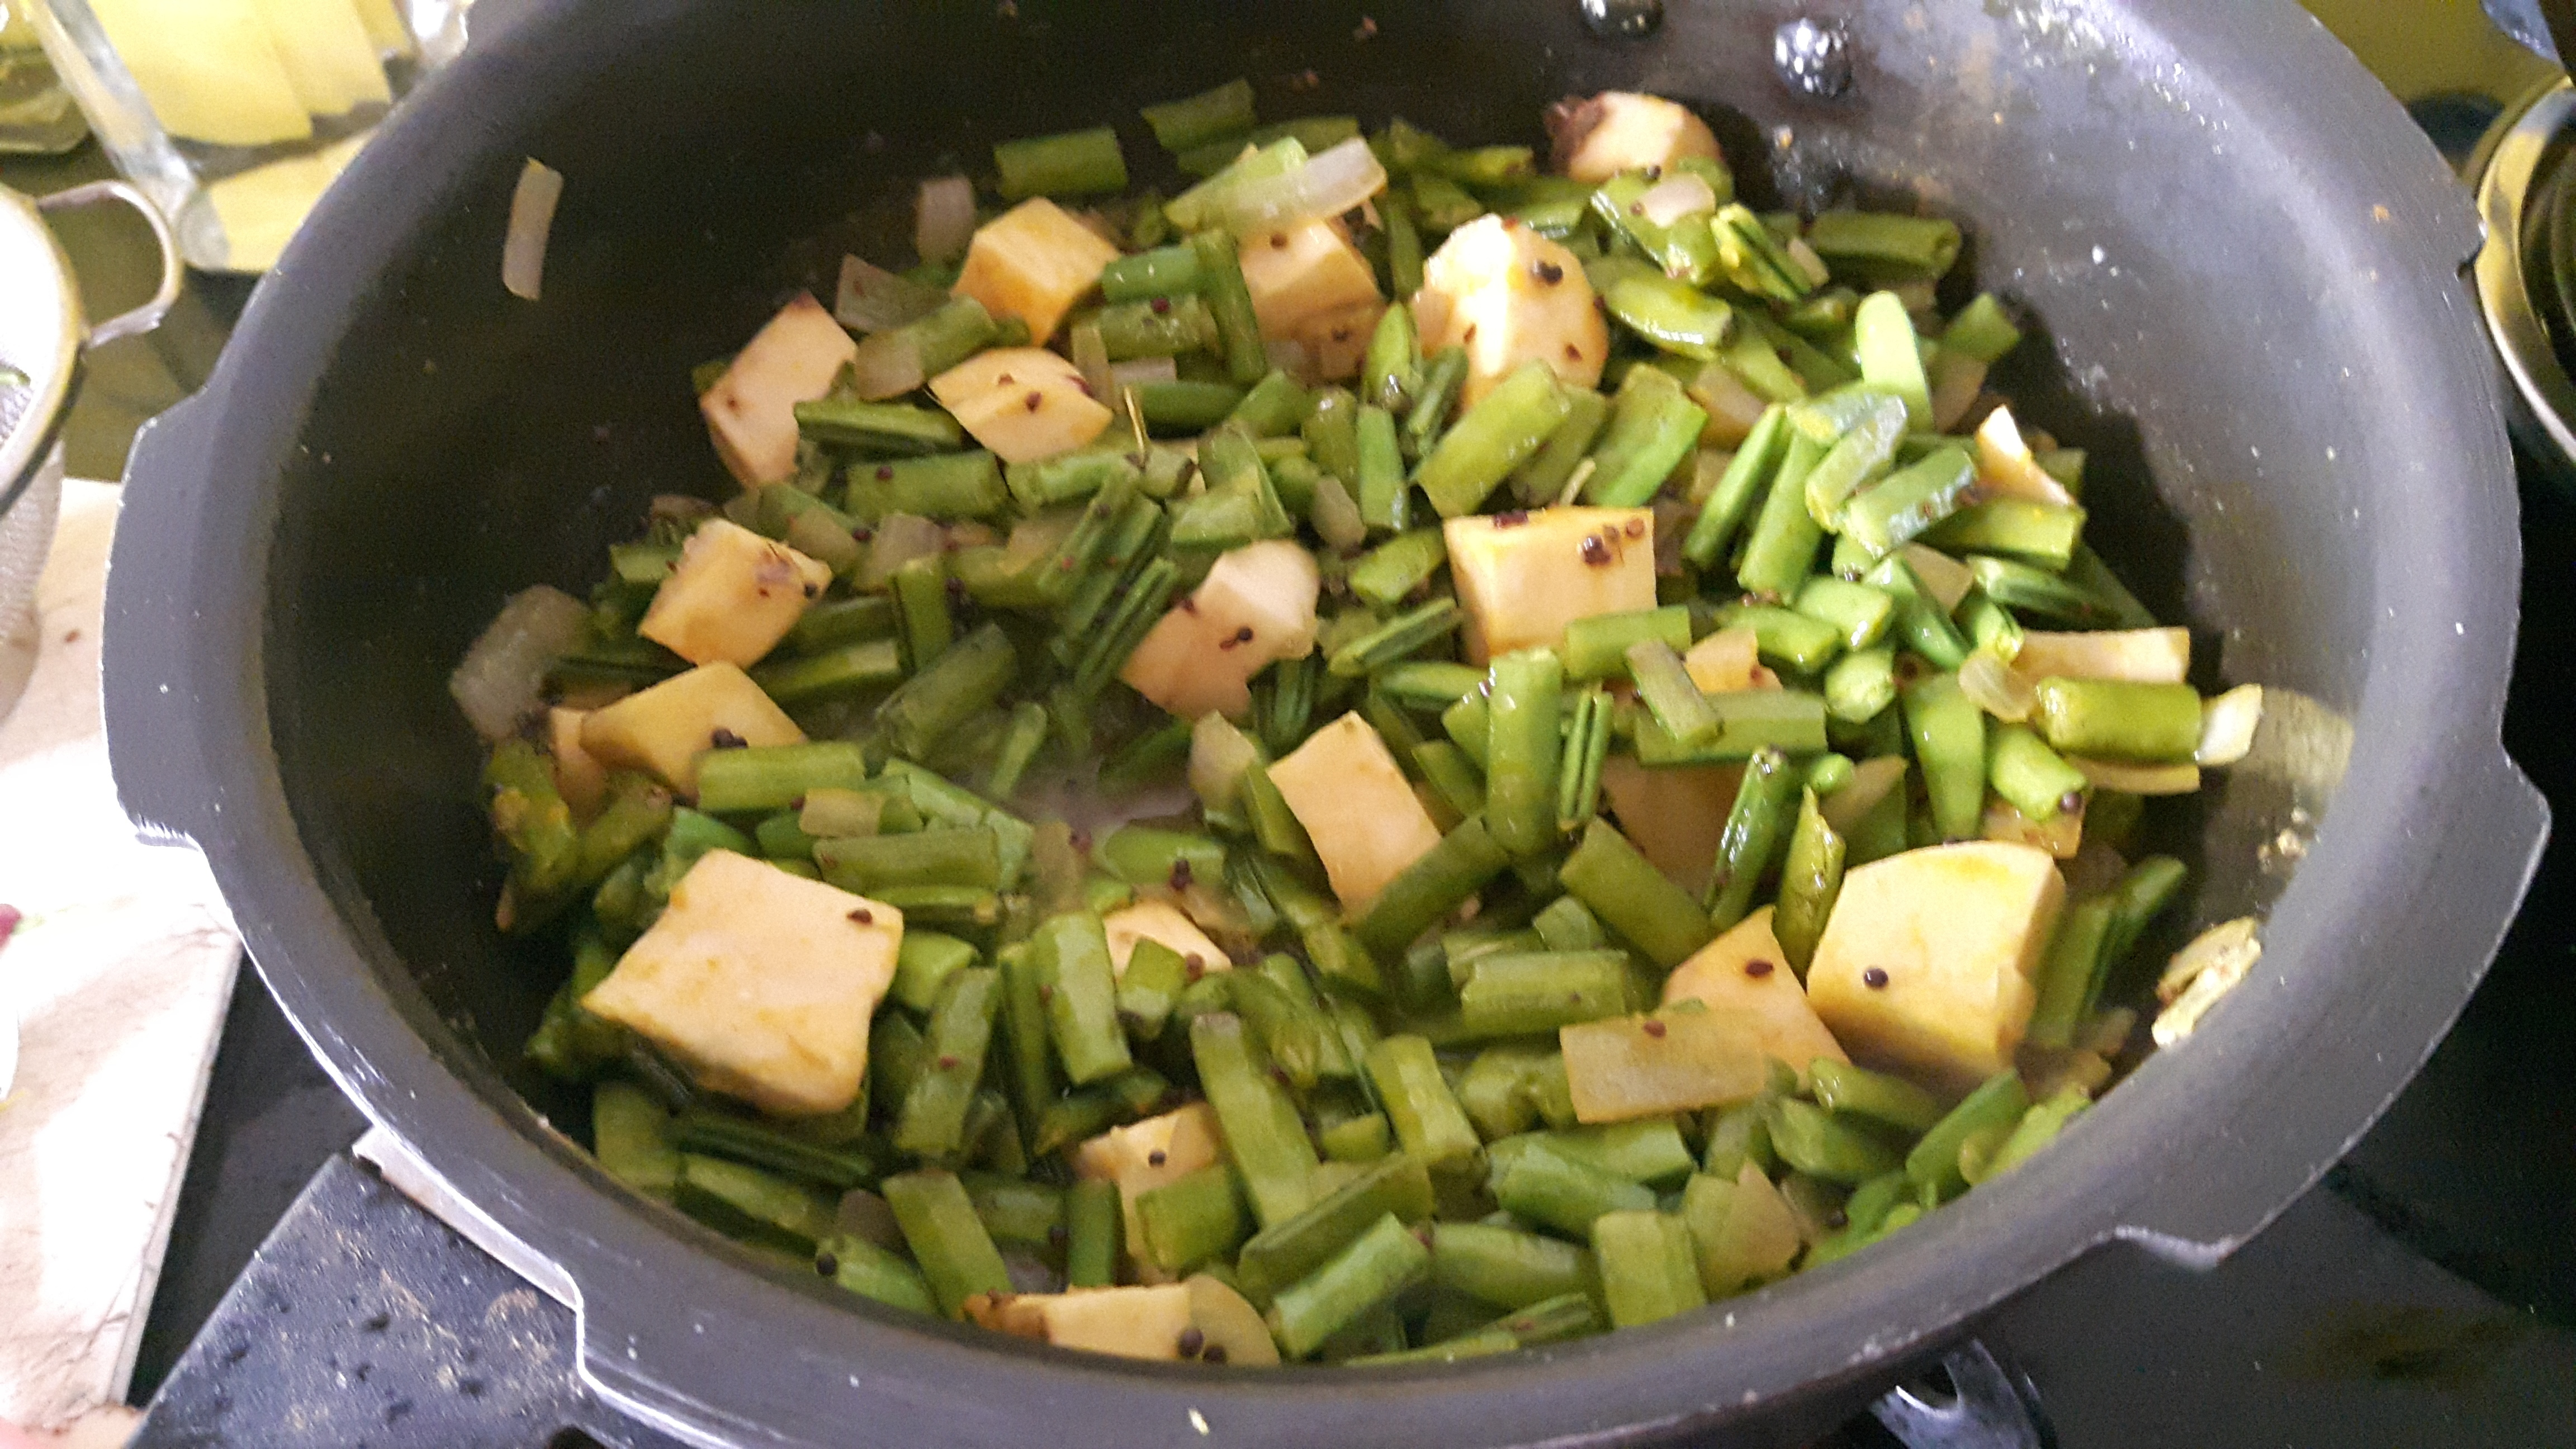 Gavar and Ratalu bhaji (Cluster Beans and Sweet Potato Vege )